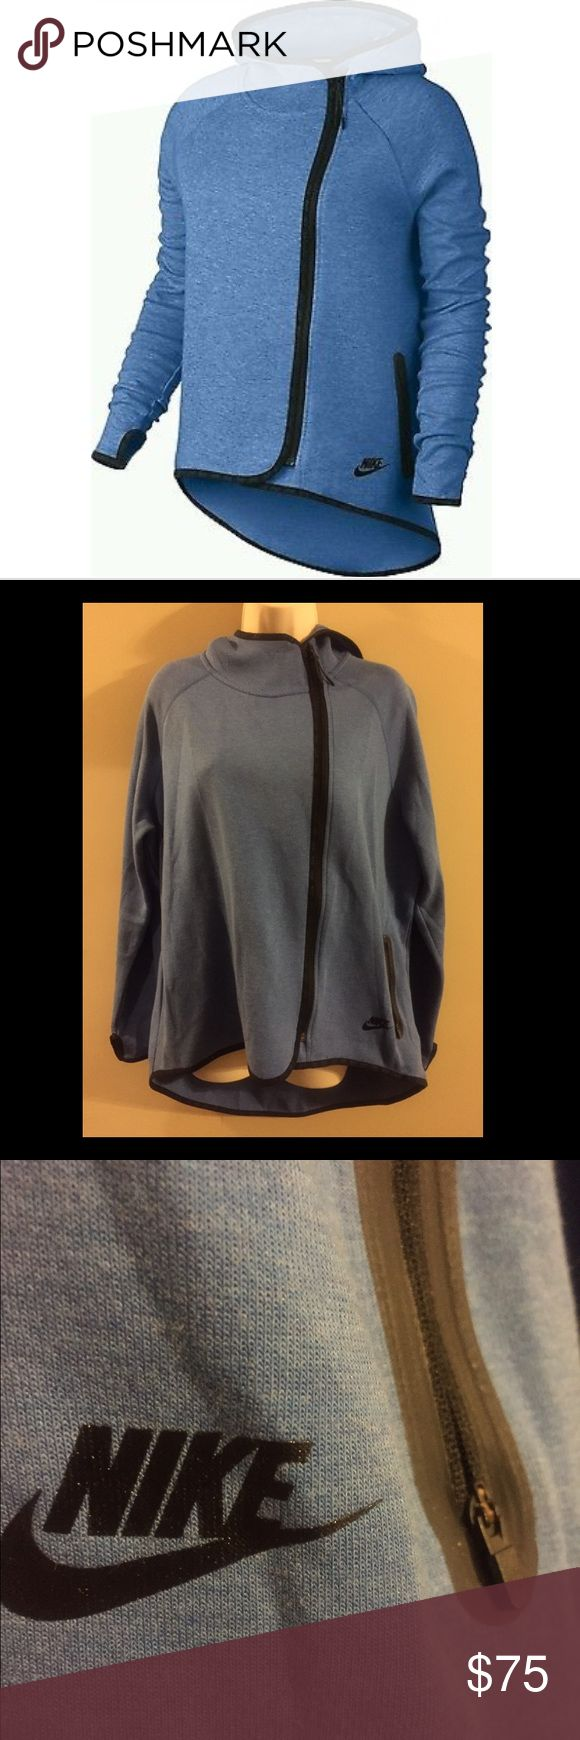 Ladies Nike Fleece Tech Cape Hoodie-XL Nice (XL) Nike fleece hoodie that looks great over Nike athletic leggings.  Very warm and comfy and is great for everyday wear or during workouts. Looks great on. Nike Jackets & Coats